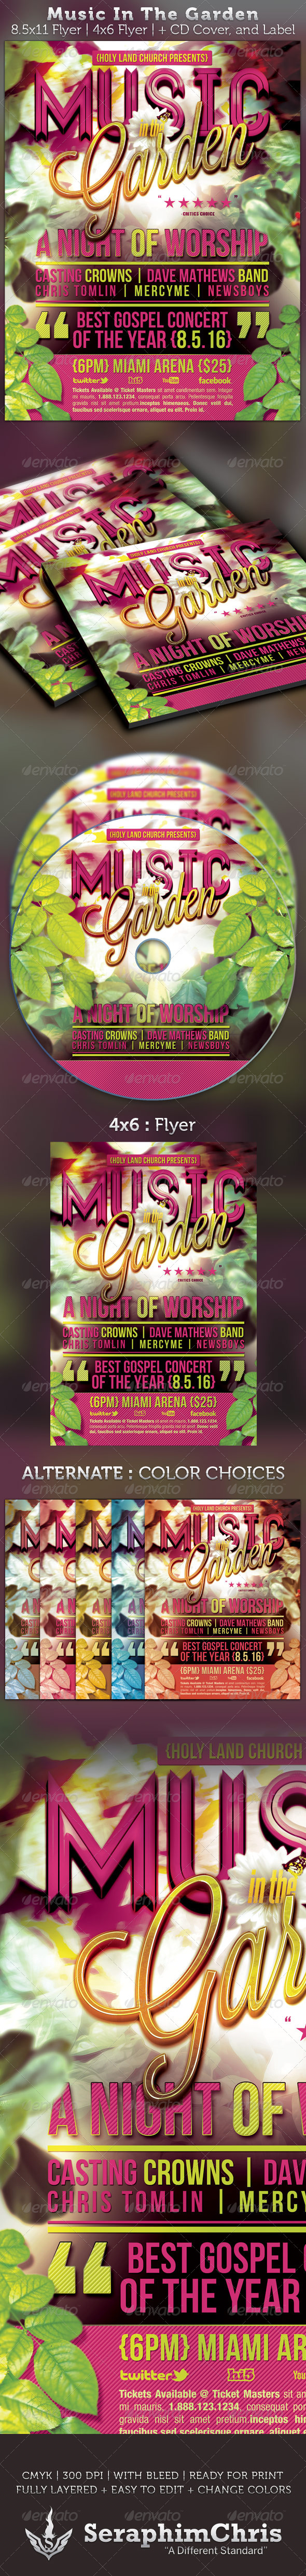 Music In The Garden Flyer and CD Cover Template - Church Flyers